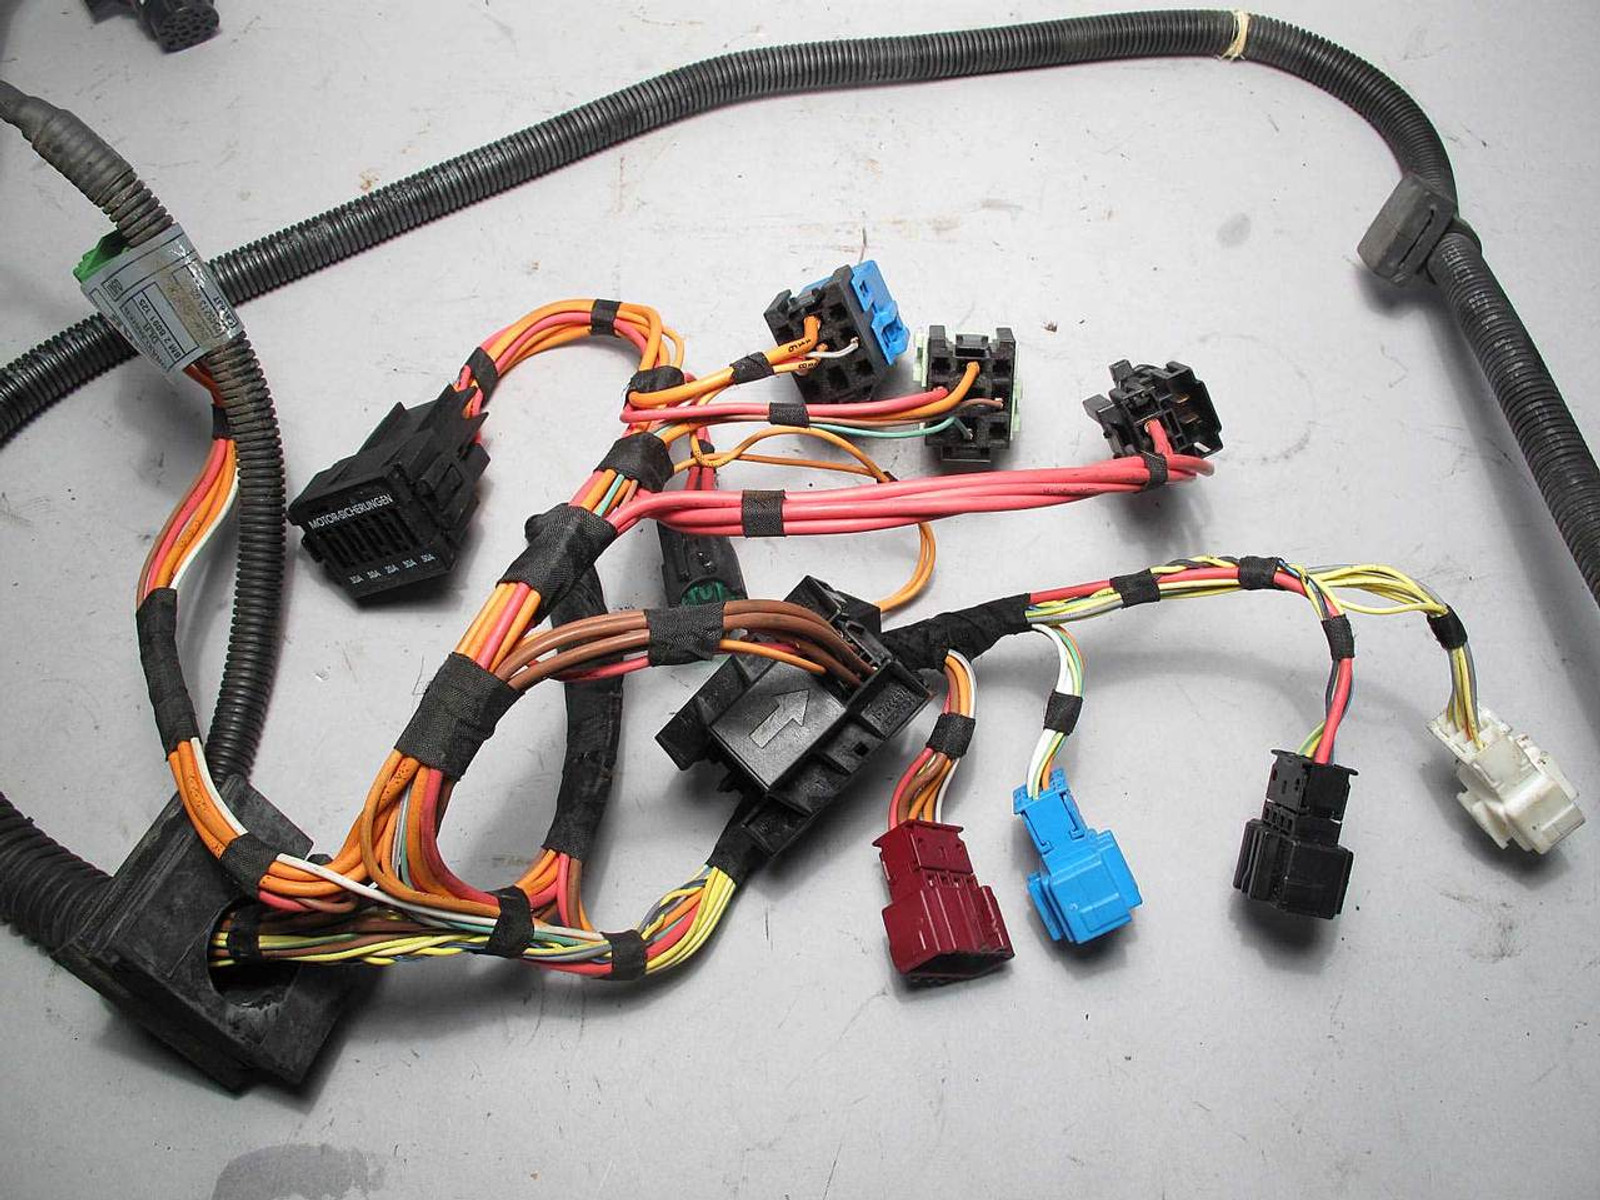 hight resolution of 2006 bmw e90 n52 325 330 automatic transmission wiring harness complete used oem